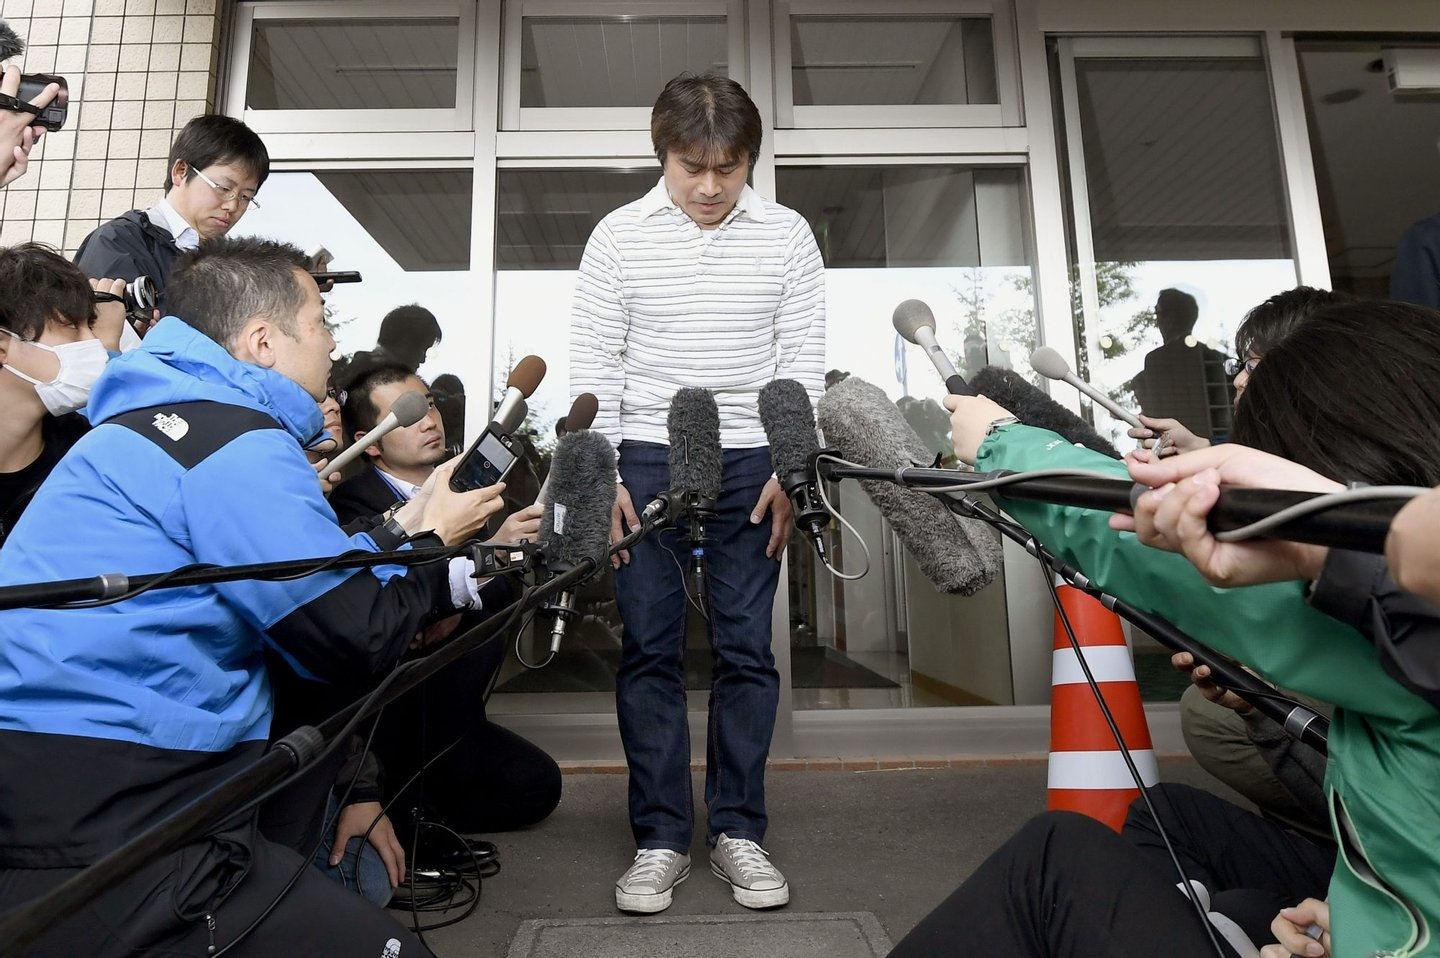 Takayuki Tanooka meets with reporters on June 3, 2016, in the northern Japan city of Hakodate, after his 7-year-old son Yamato was found safe after being left behind in mountain forests on May 28 as punishment for misbehaving. The 44-year-old father apologized for trouble he caused. (Photo by Kyodo News via Getty Images)